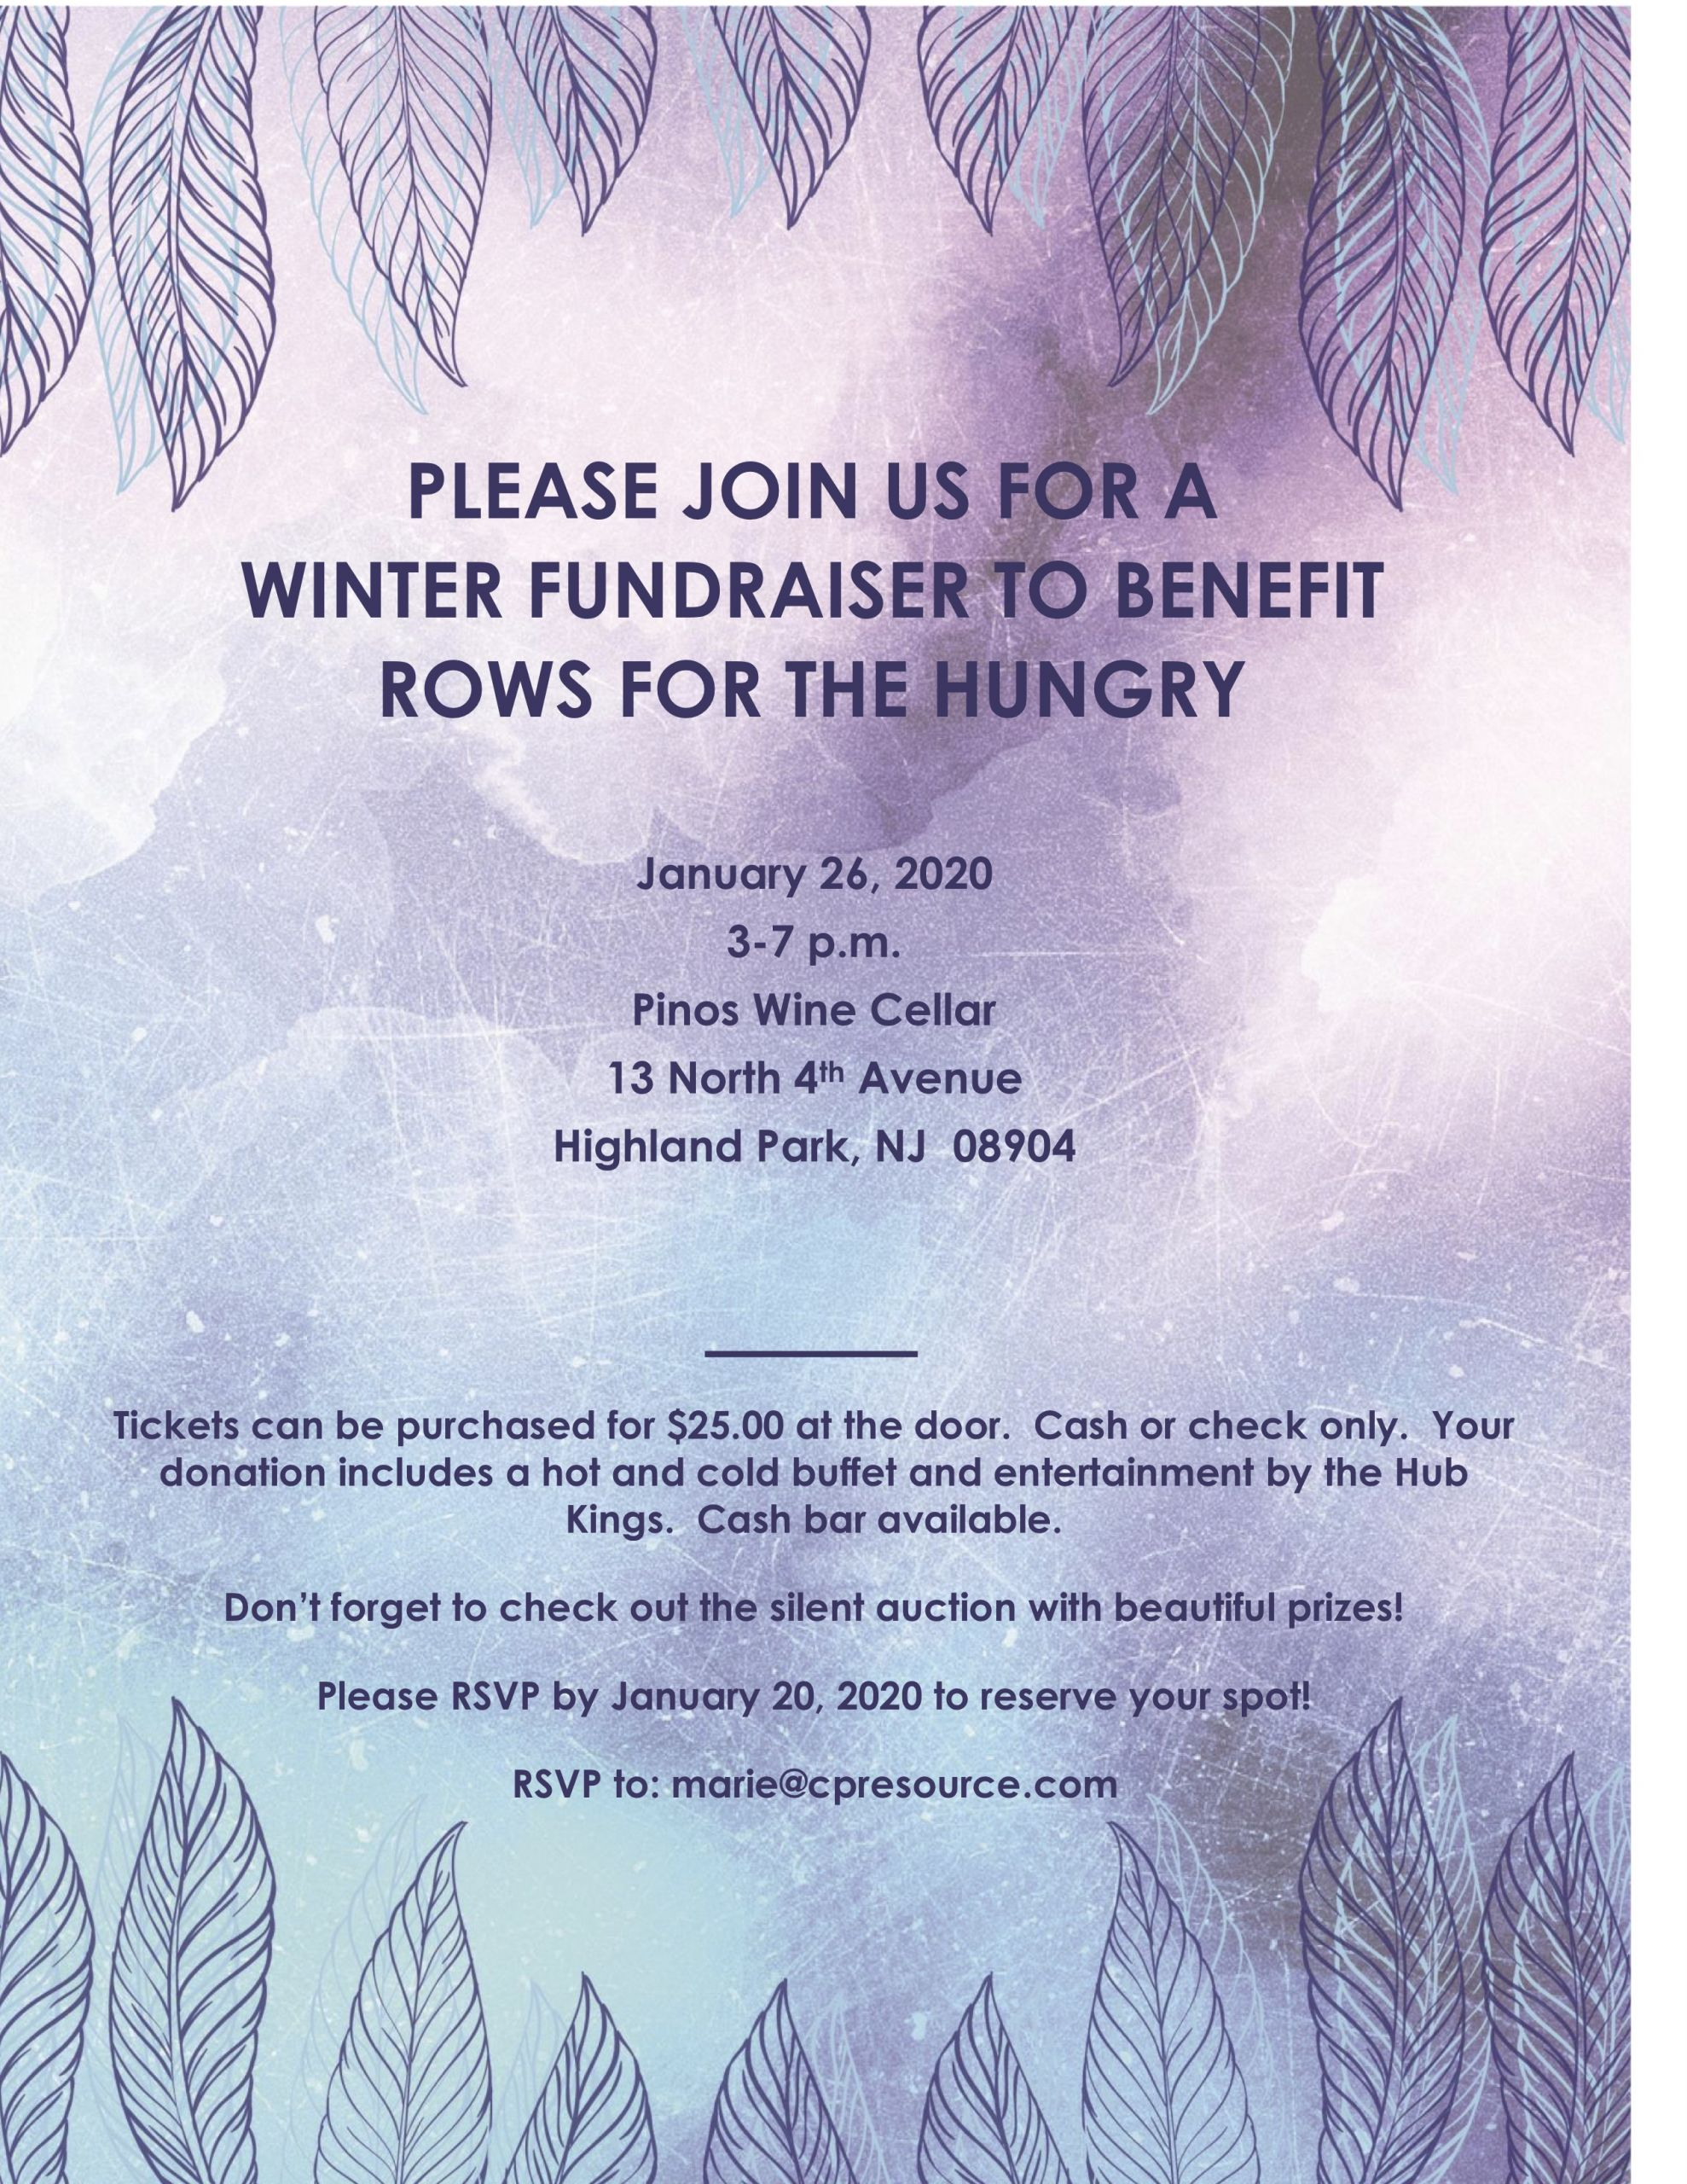 Fundraiser for Rows for the Hungry at Pino's on January 26th from 3-7 pm